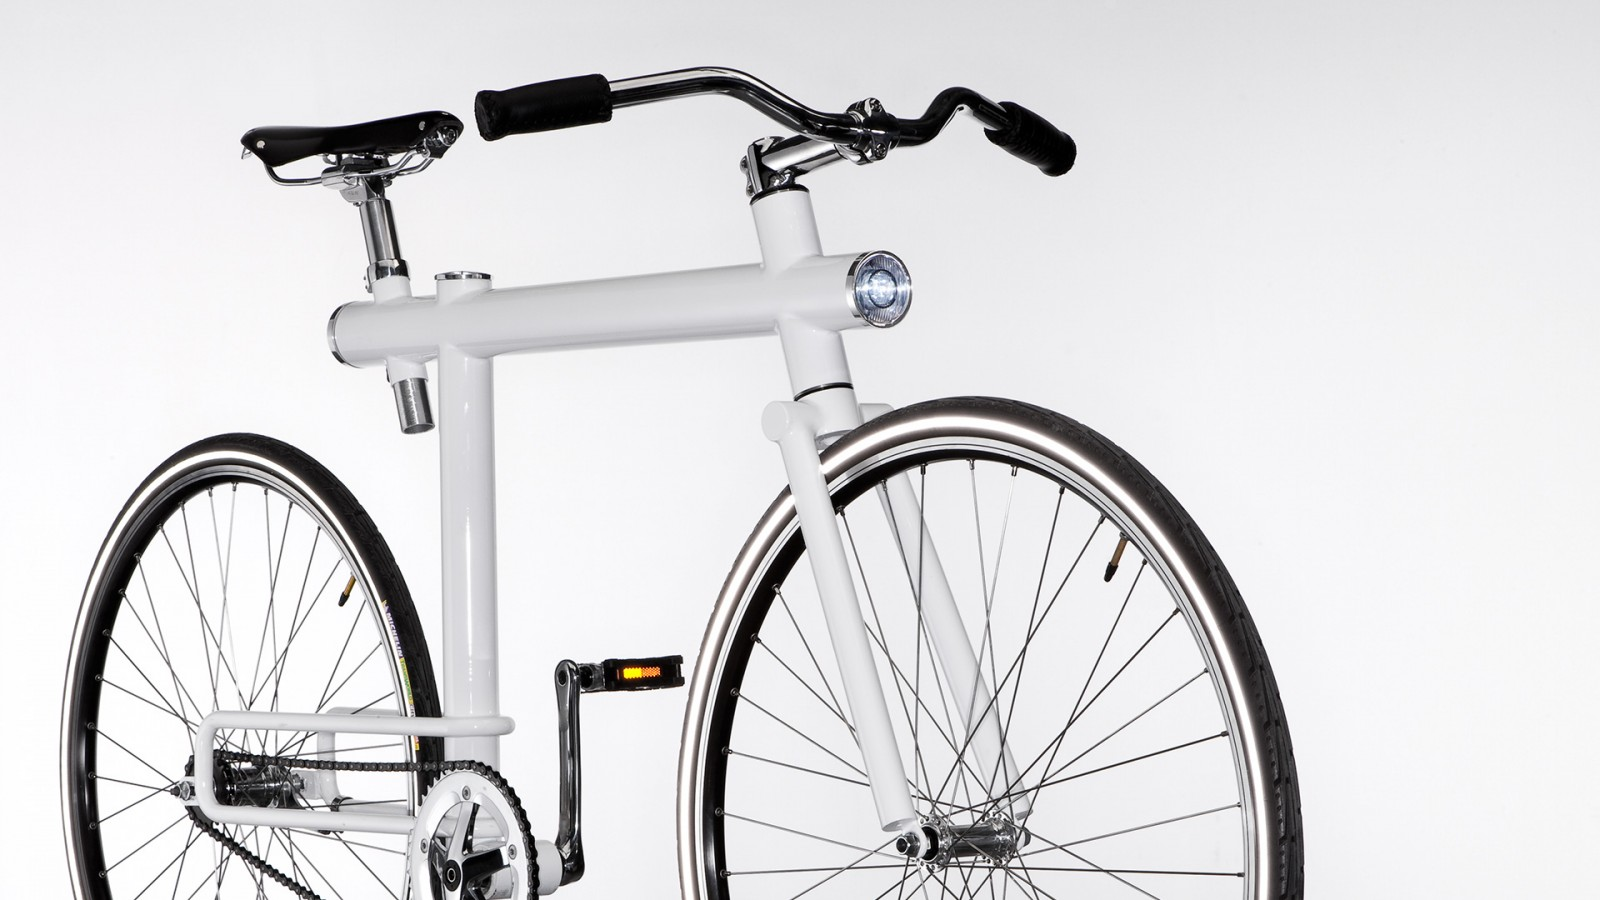 plus bike - urban design bike by erman.bike modena